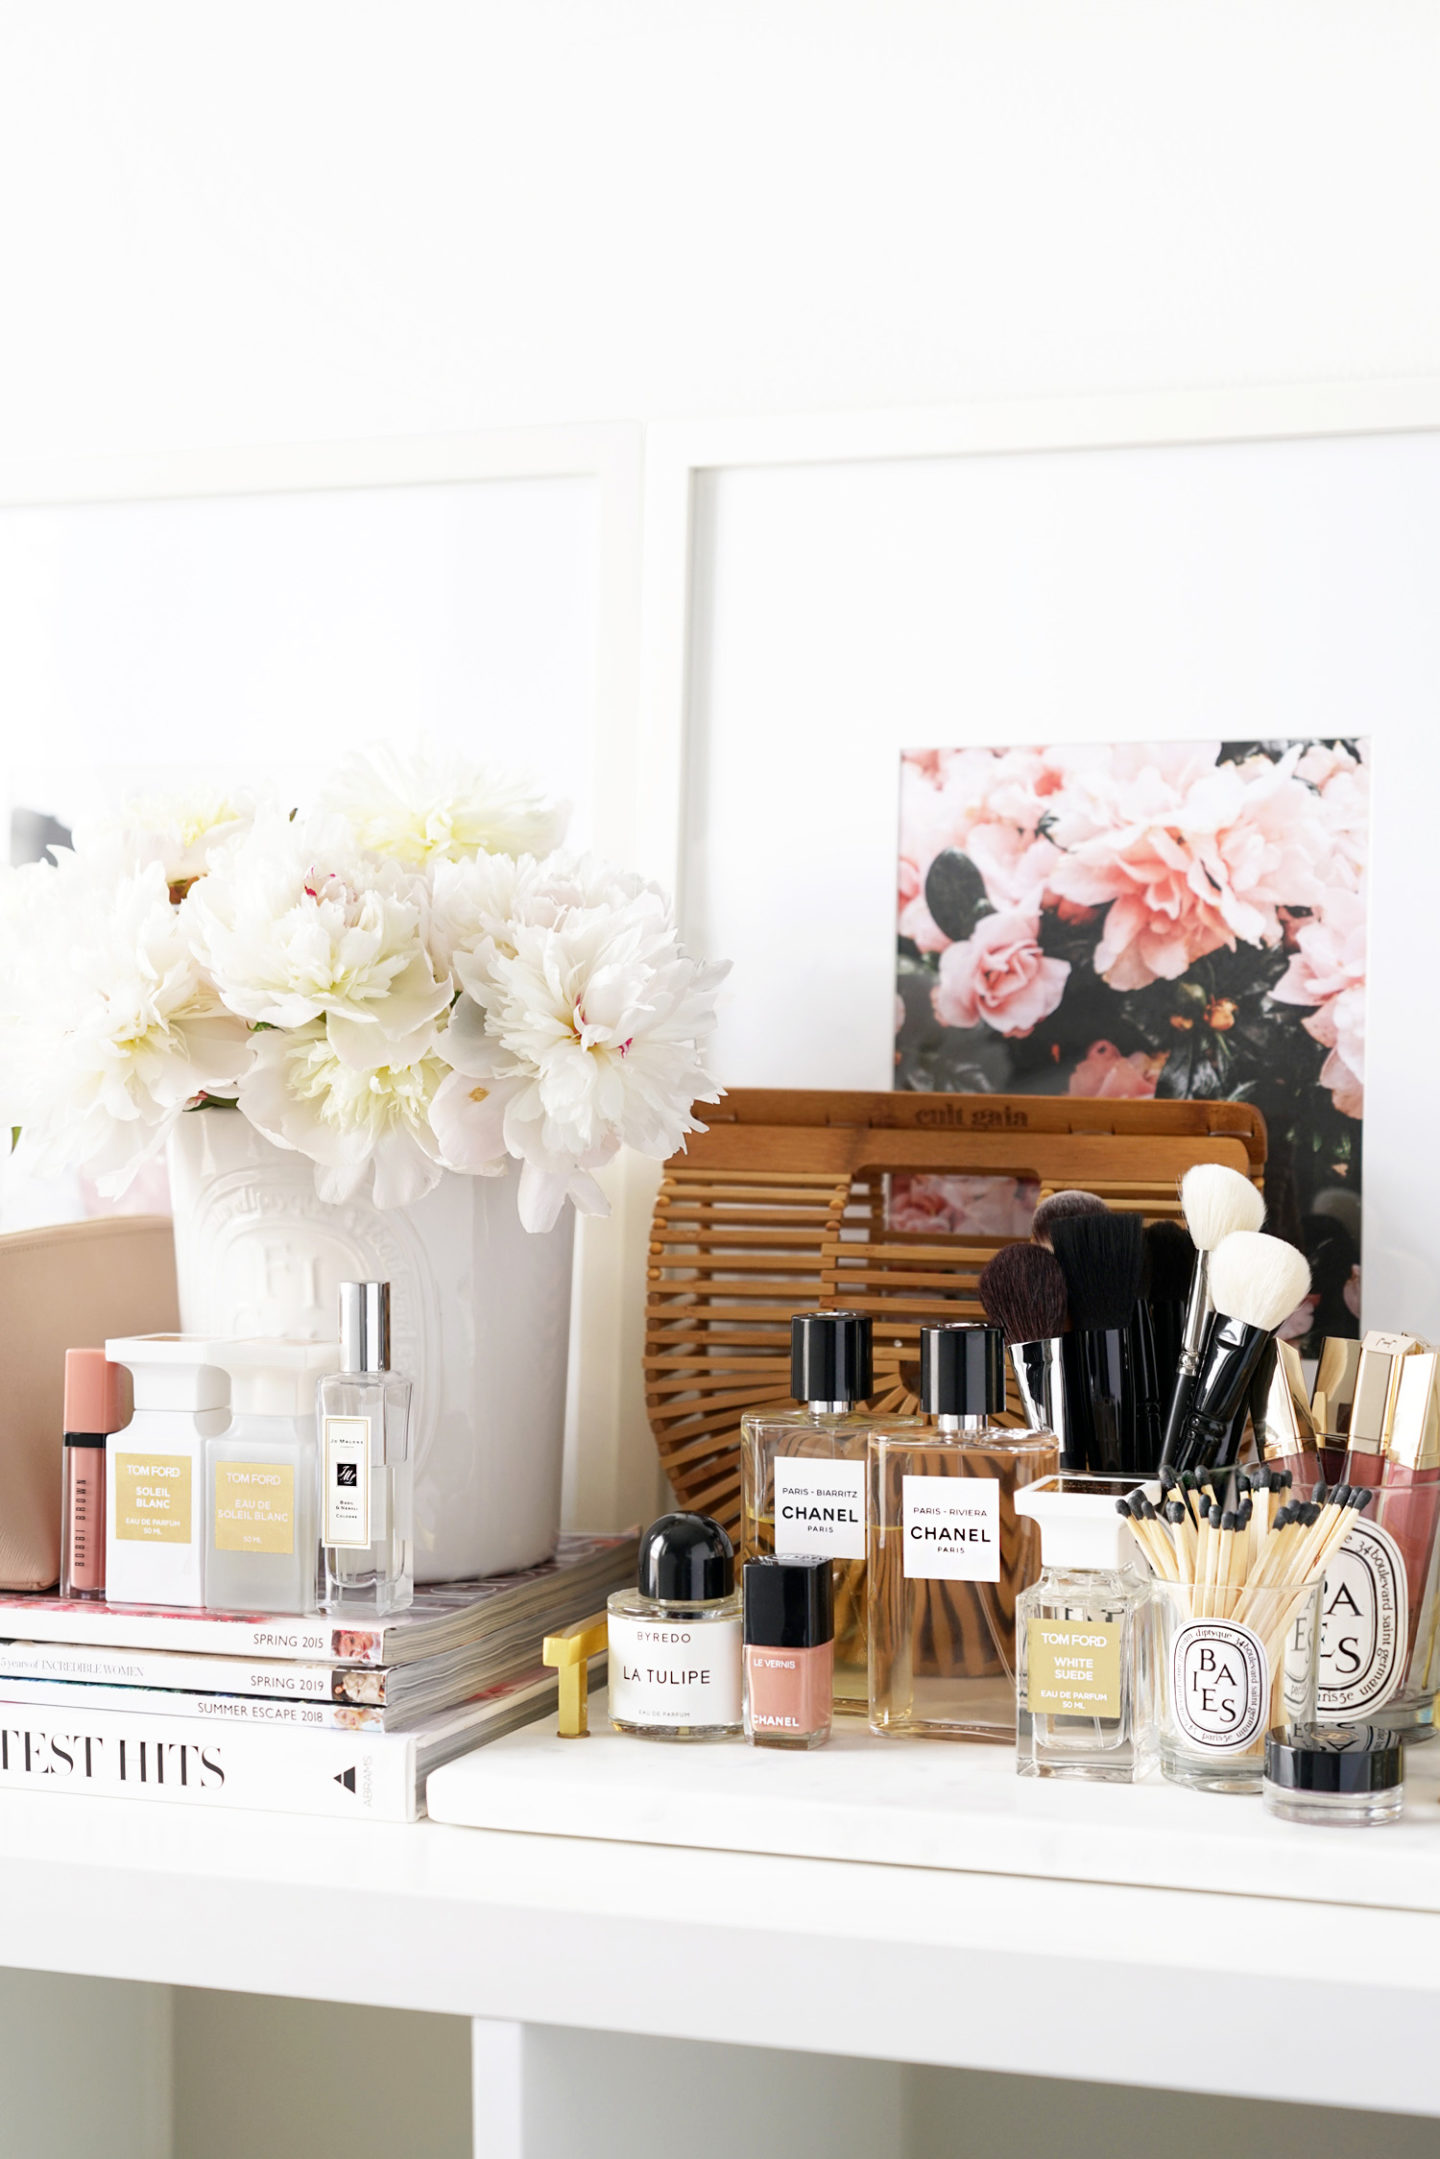 Best Spring to Summer Perfumes 2019 | The Beauty Look Book